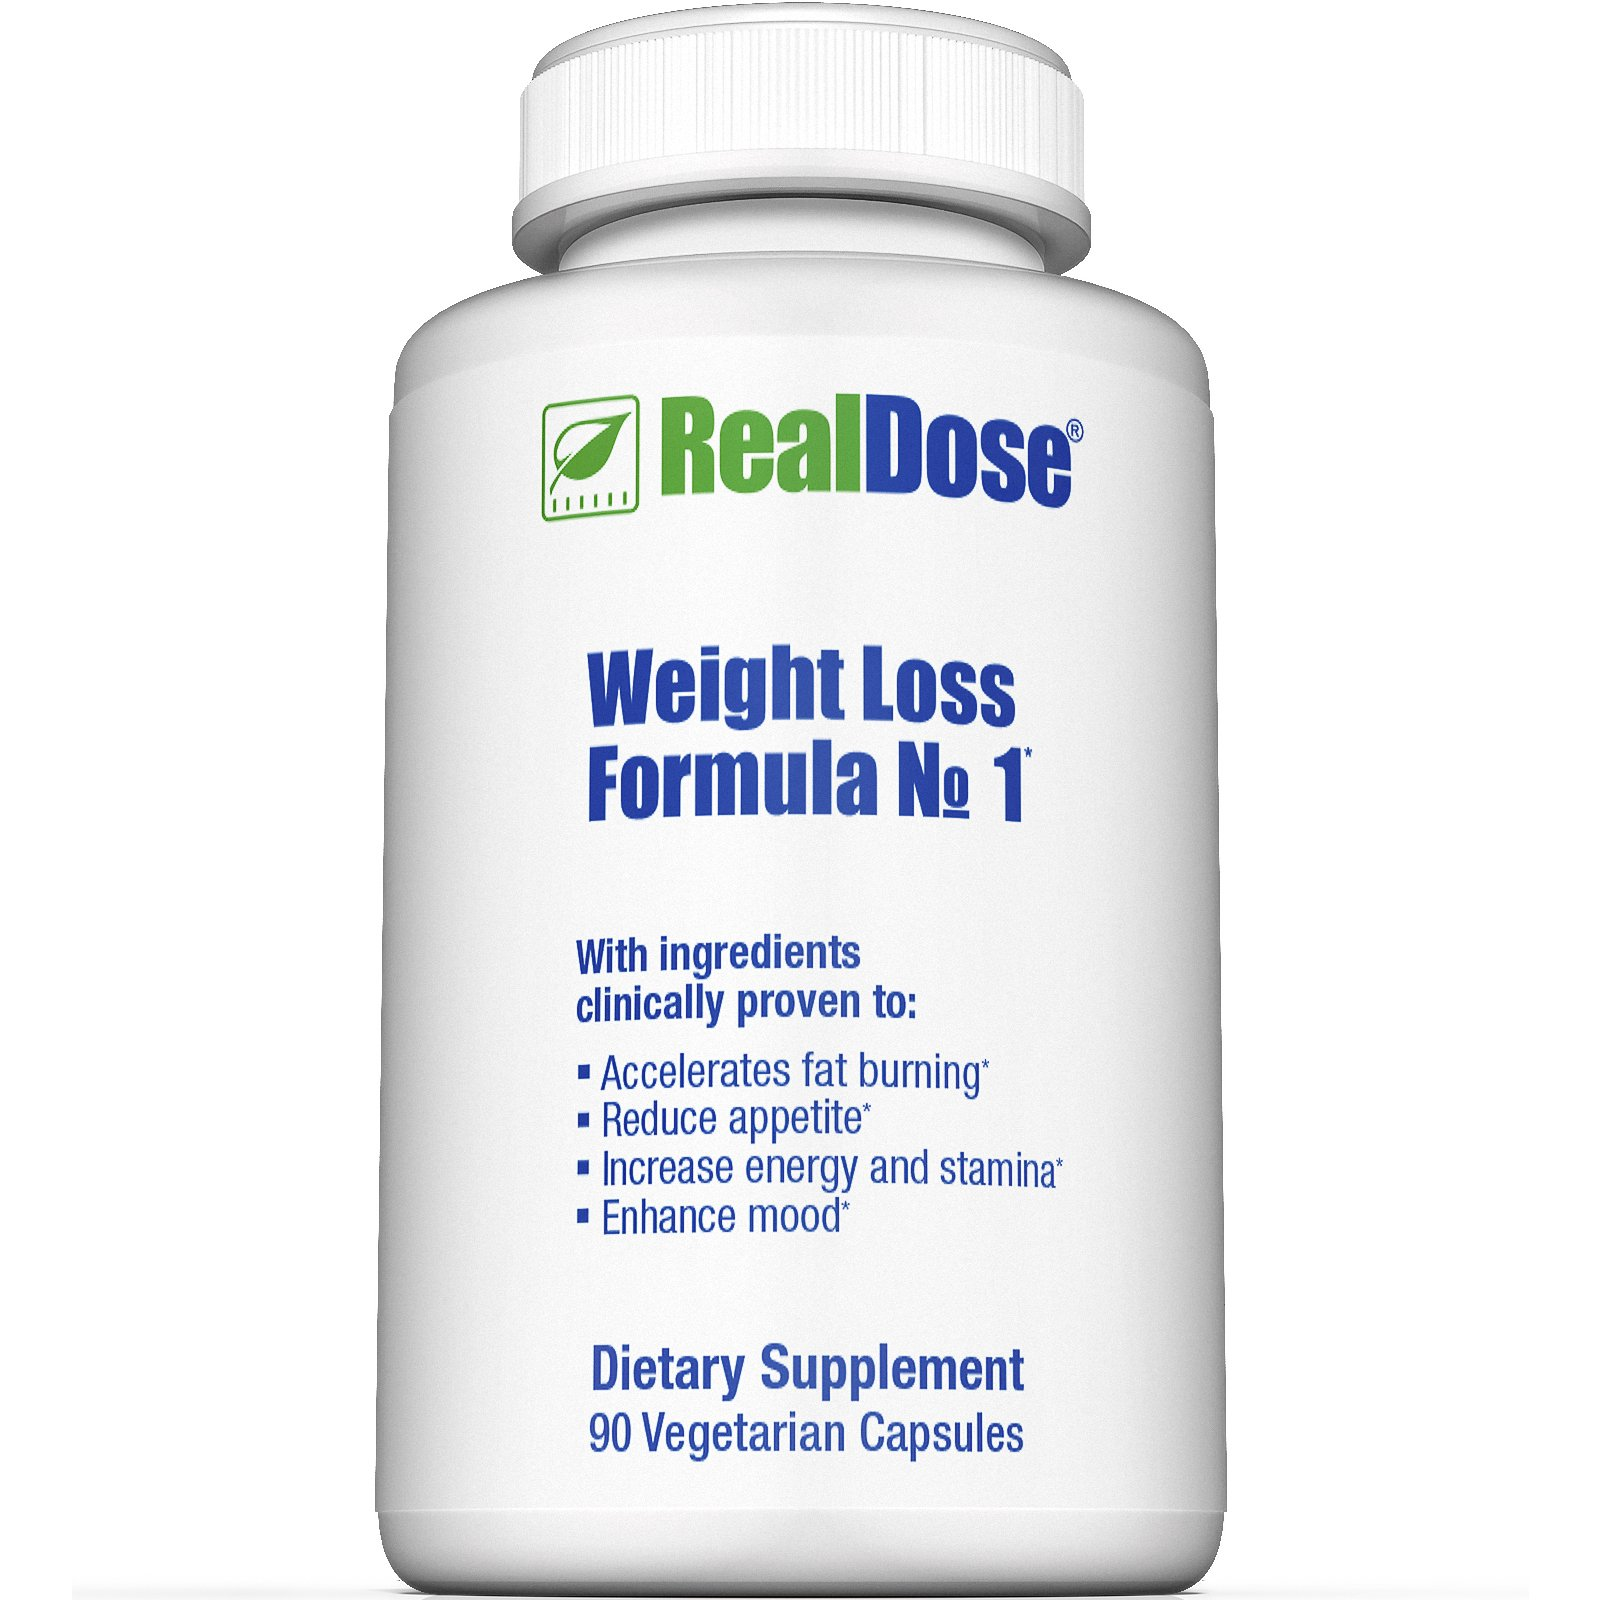 X weight loss product